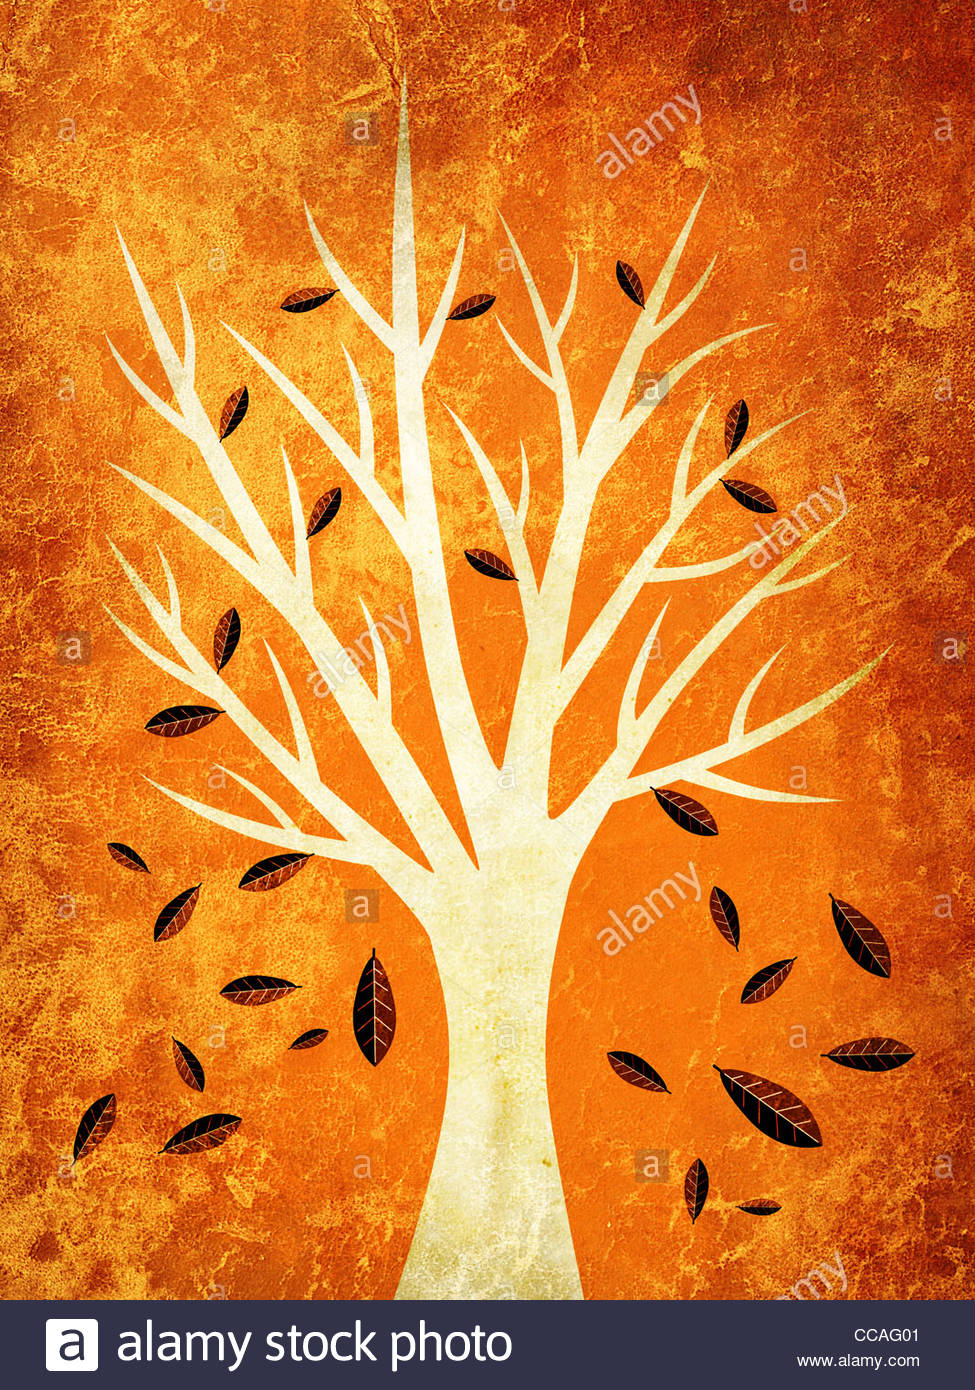 autumn leaves falling from tree illustration stock photo royalty